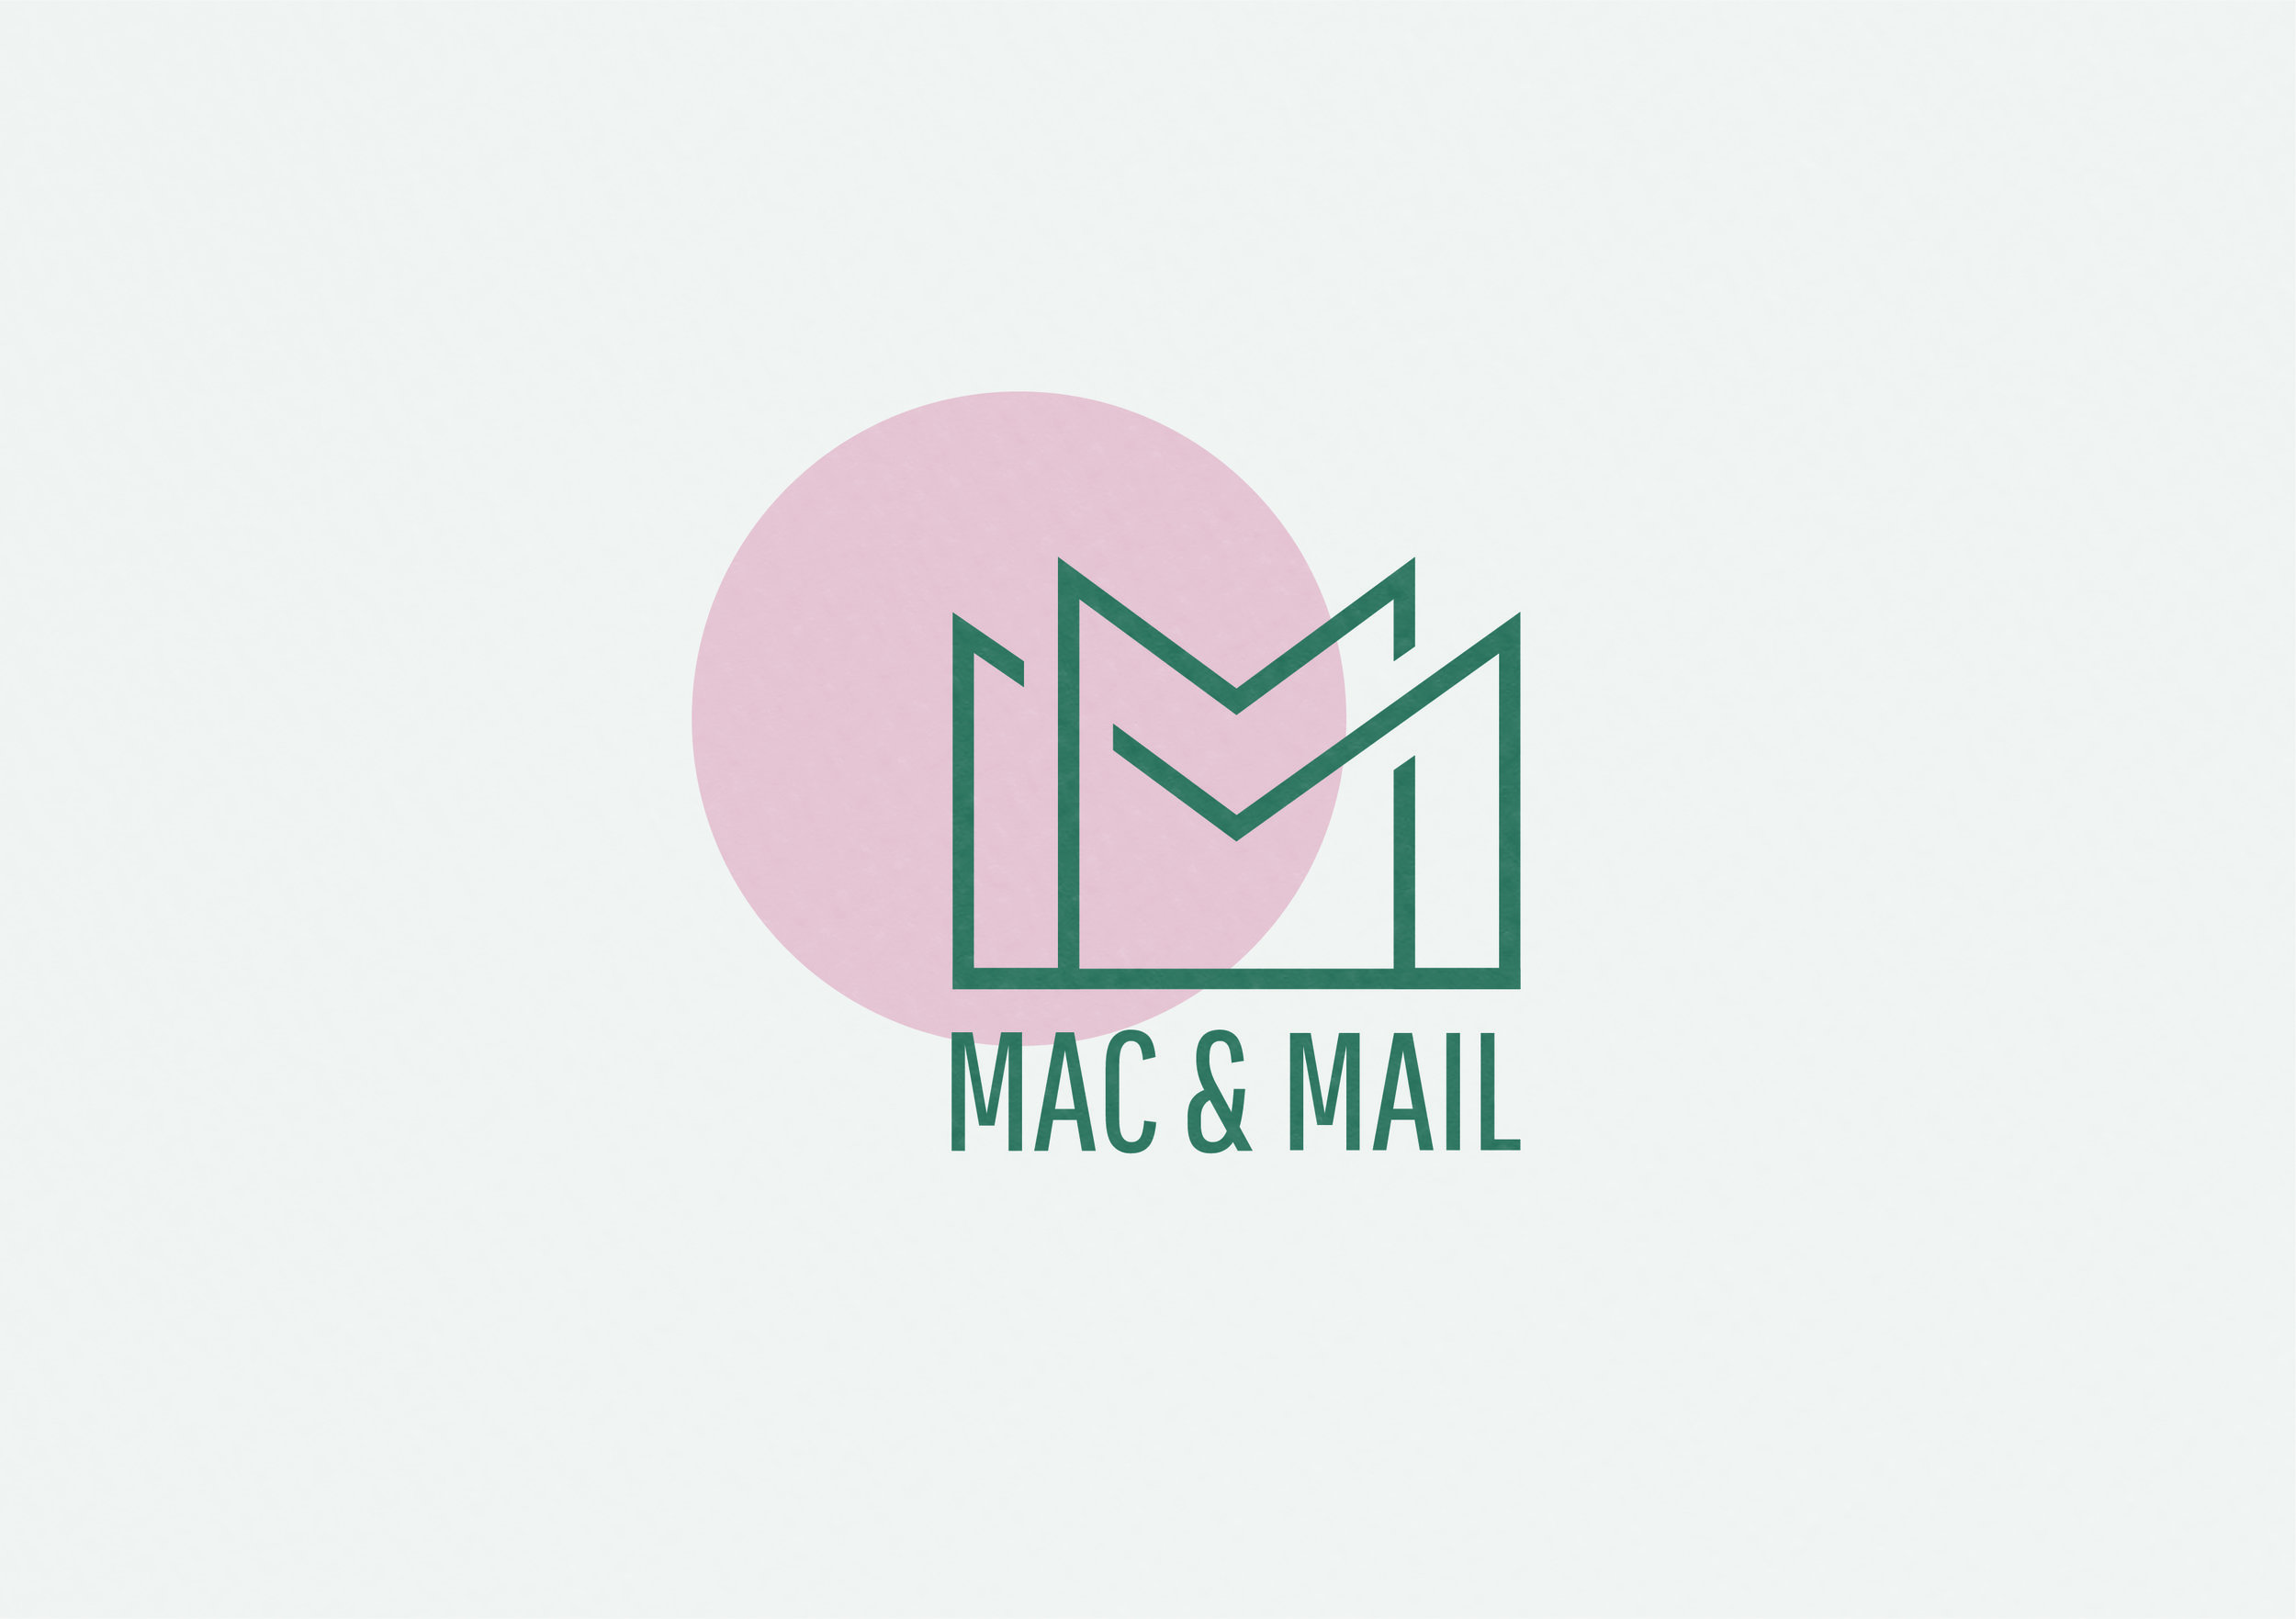 Mac&Mail concept and logo design for monthly email newsletter